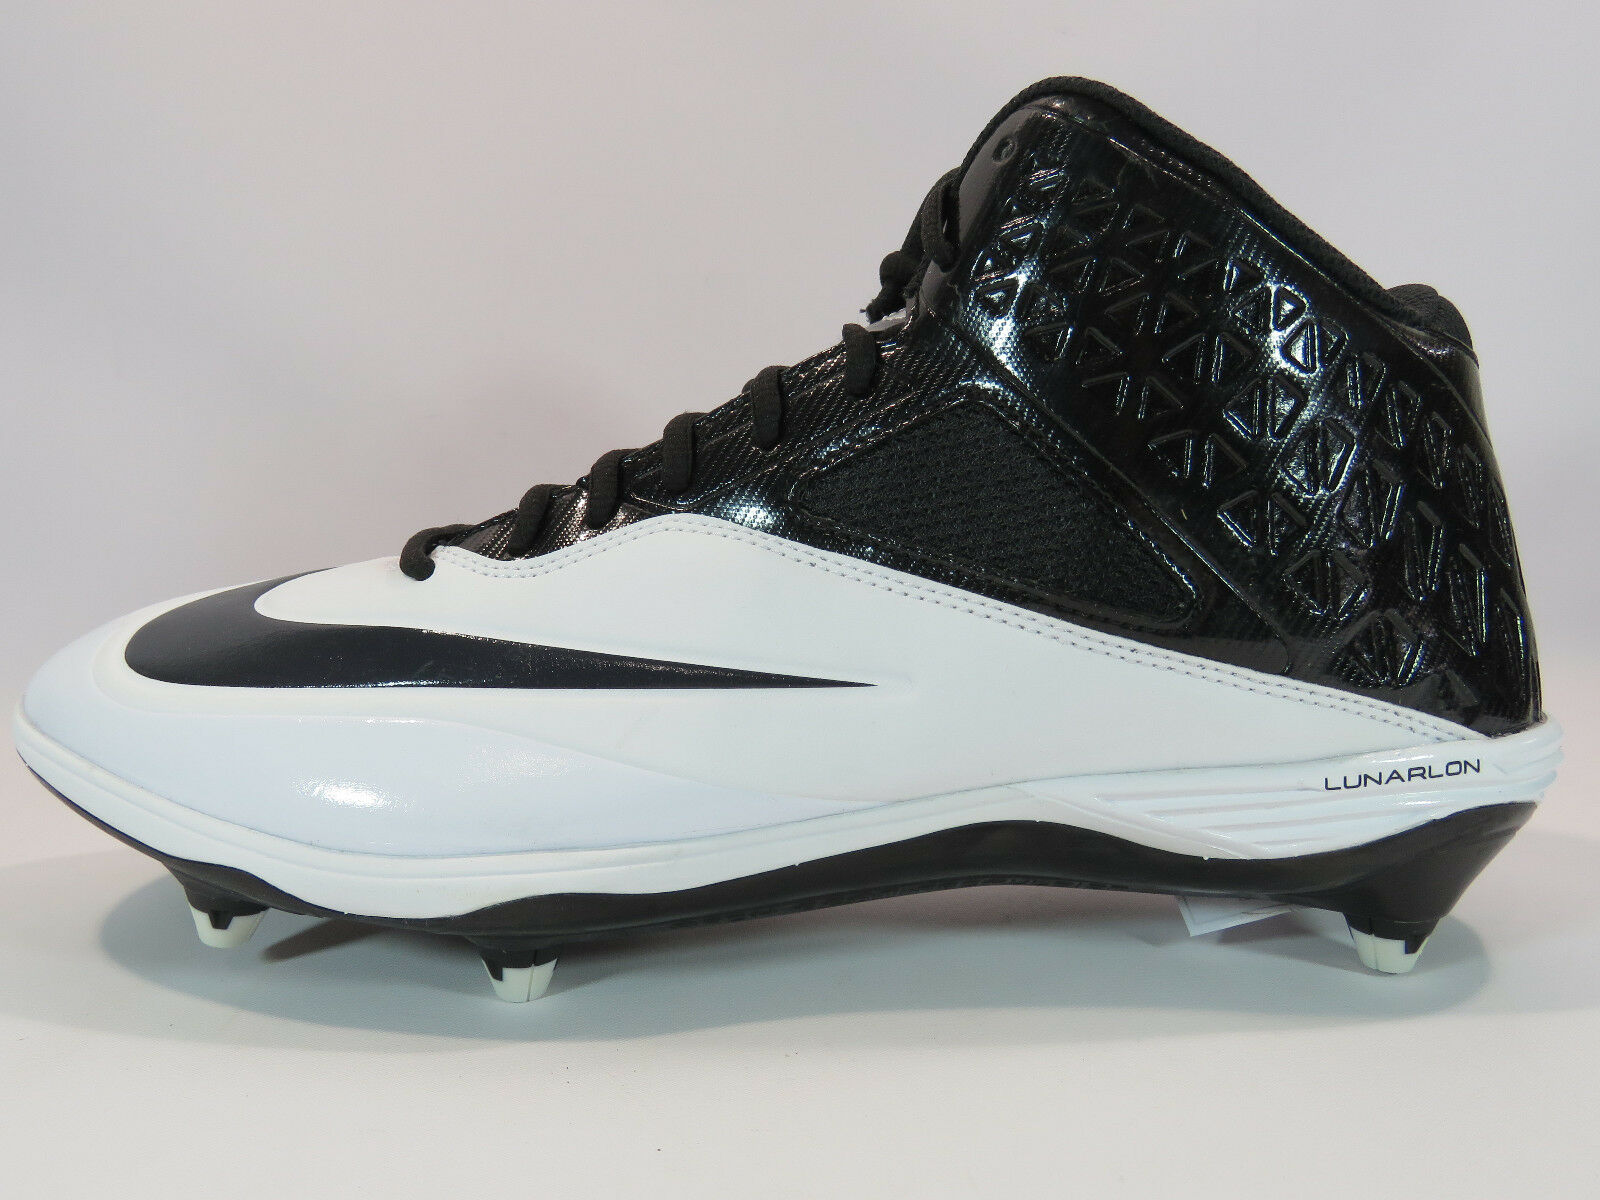 Nike Men's Lunar Code Pro 3/4 D Football Cleats Black and White Comfortable best-selling model of the brand